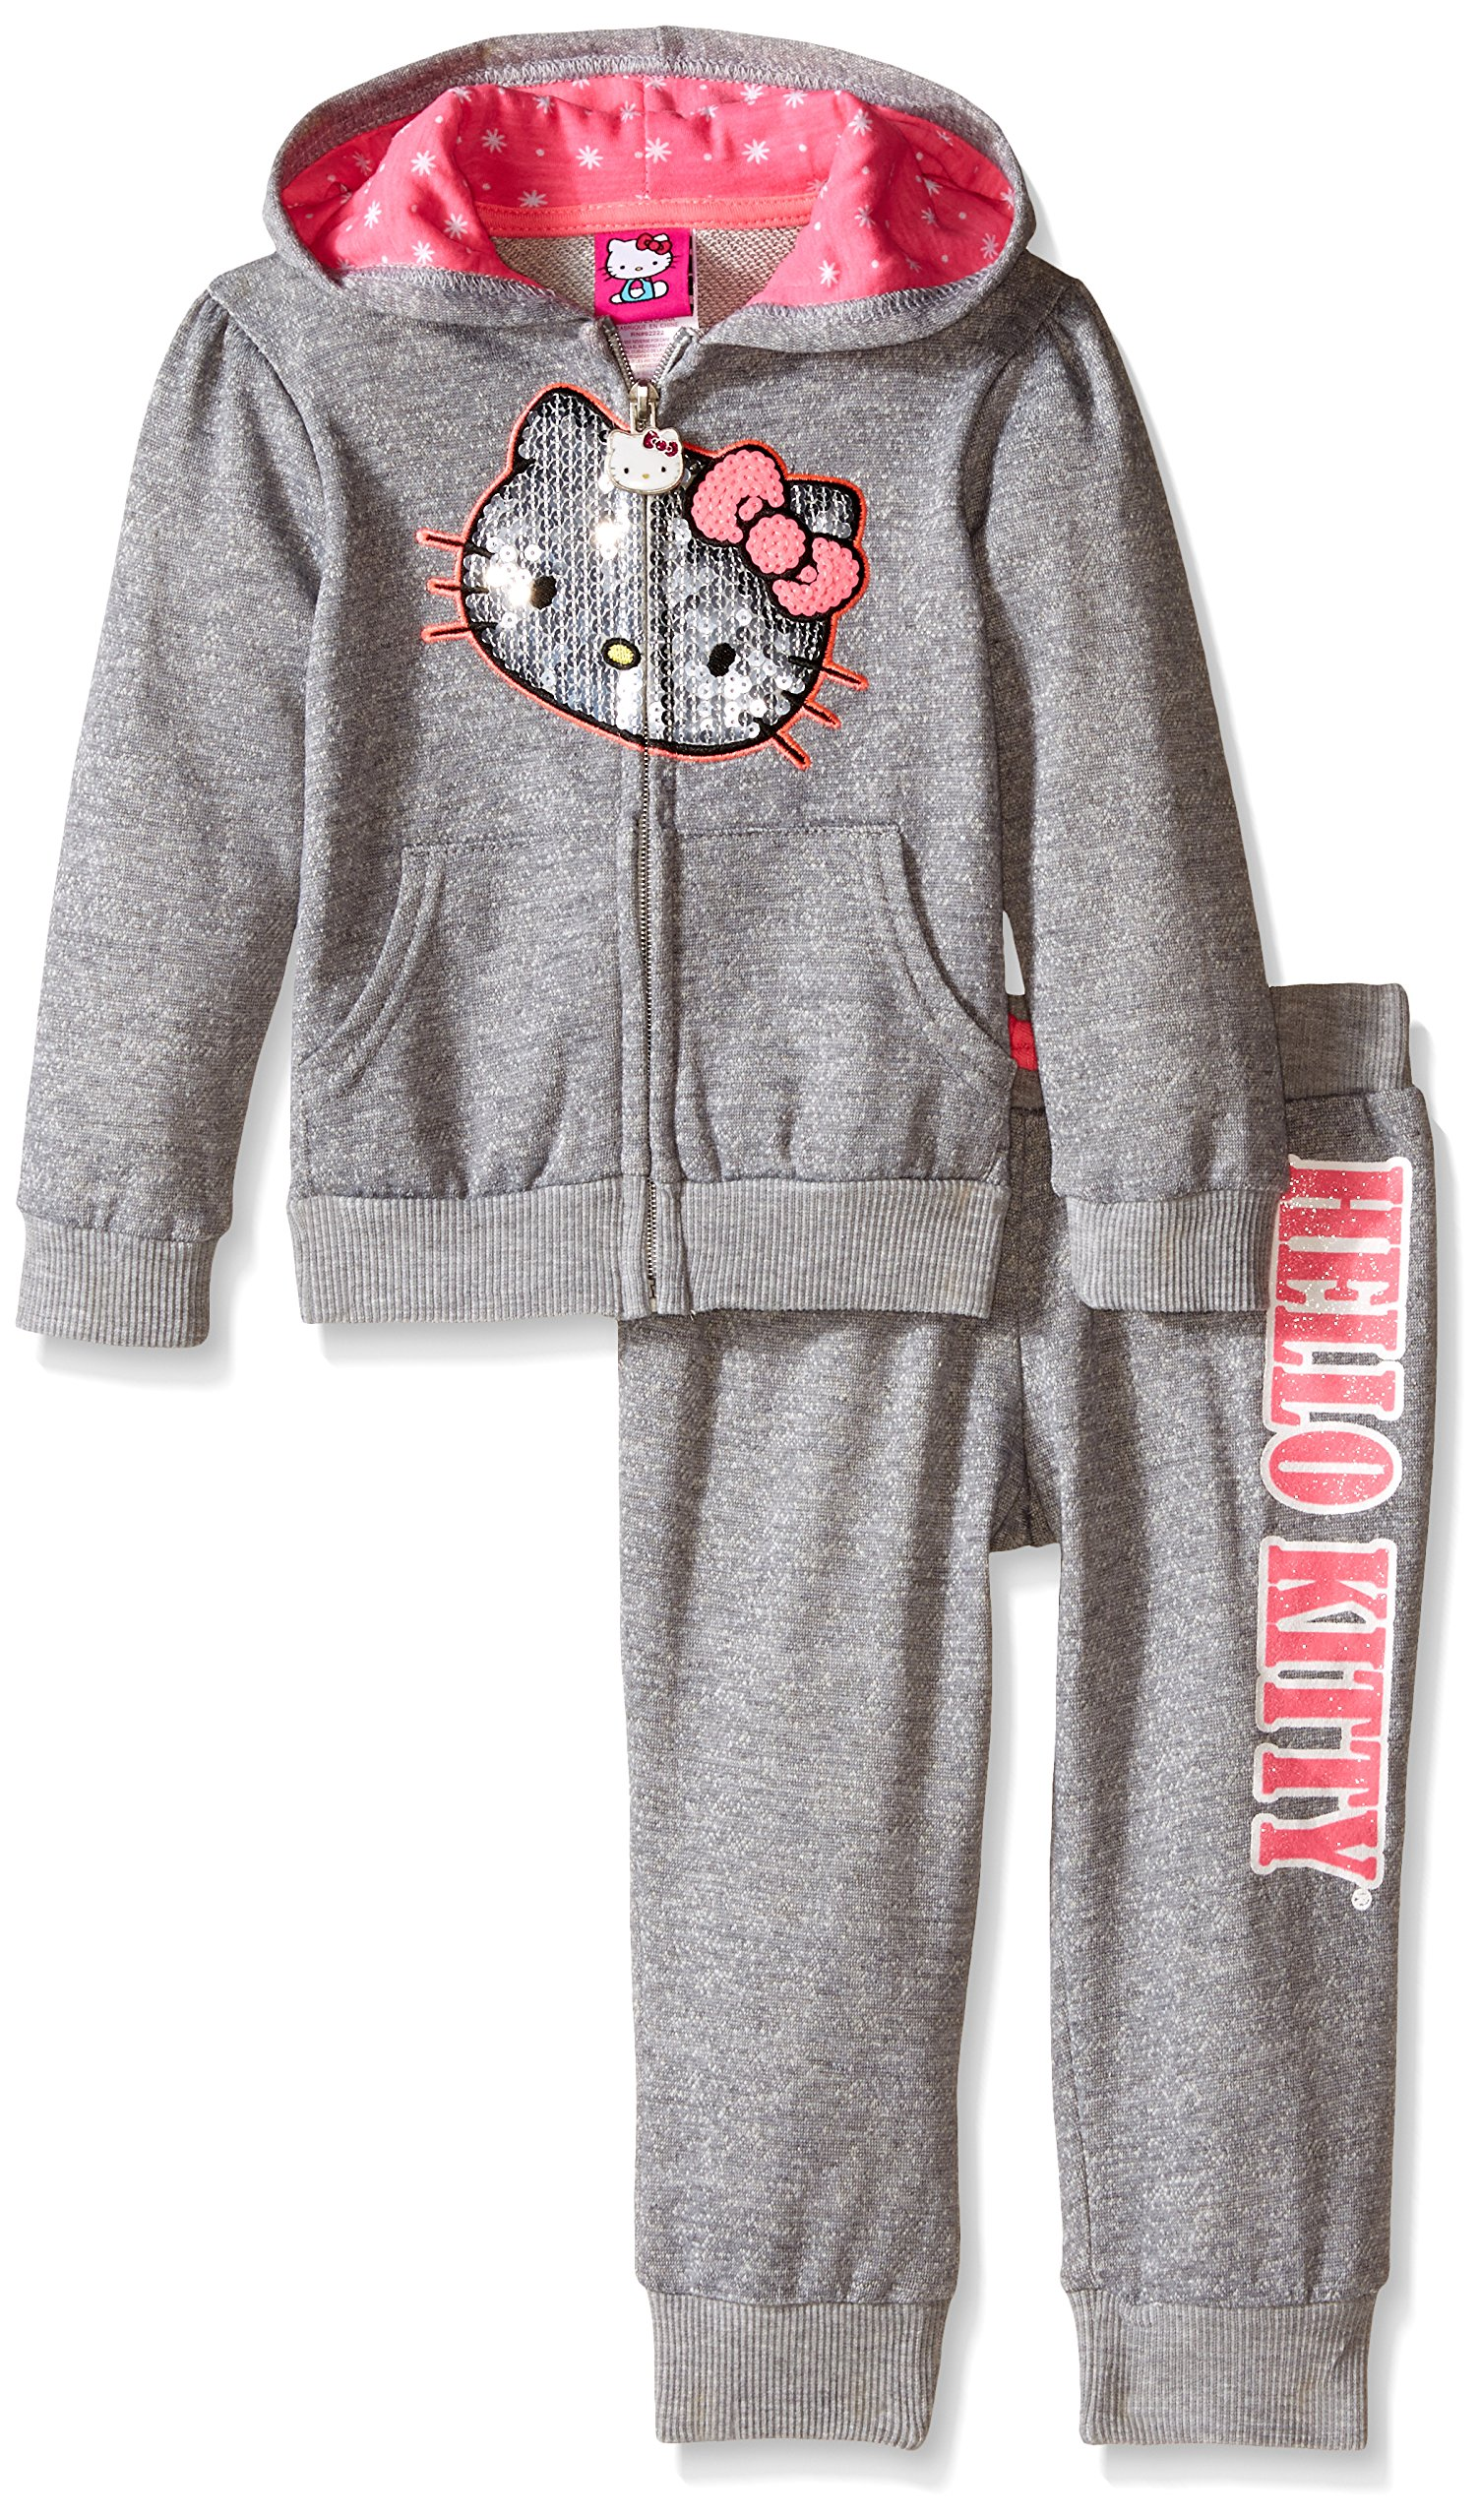 Hello Kitty Little Girls' Toddler 2 Piece Hoodie and Pant Set, Gray/Pink, 2T